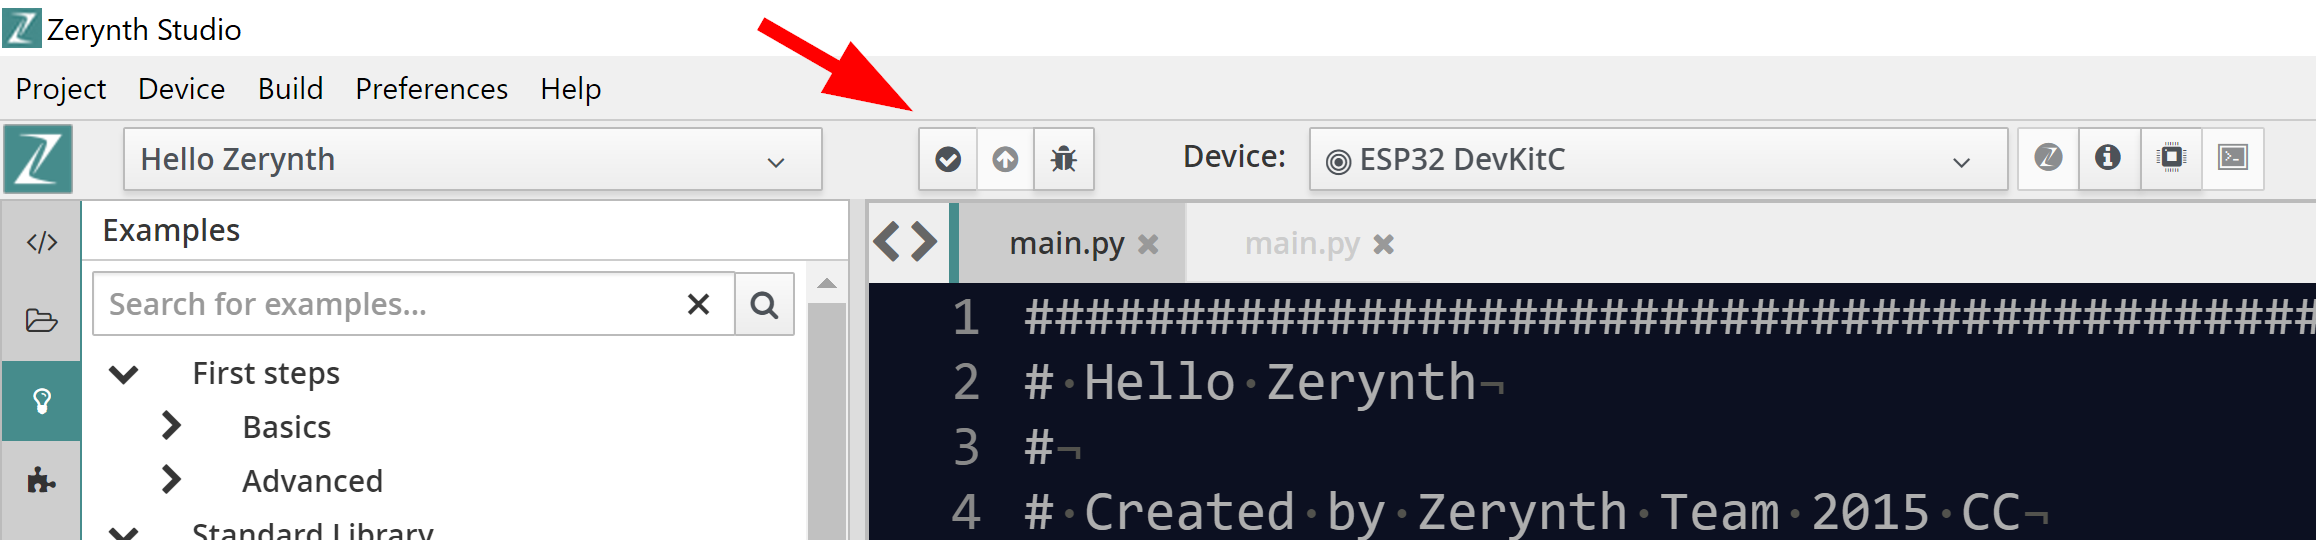 How to uplink your Zerynth project